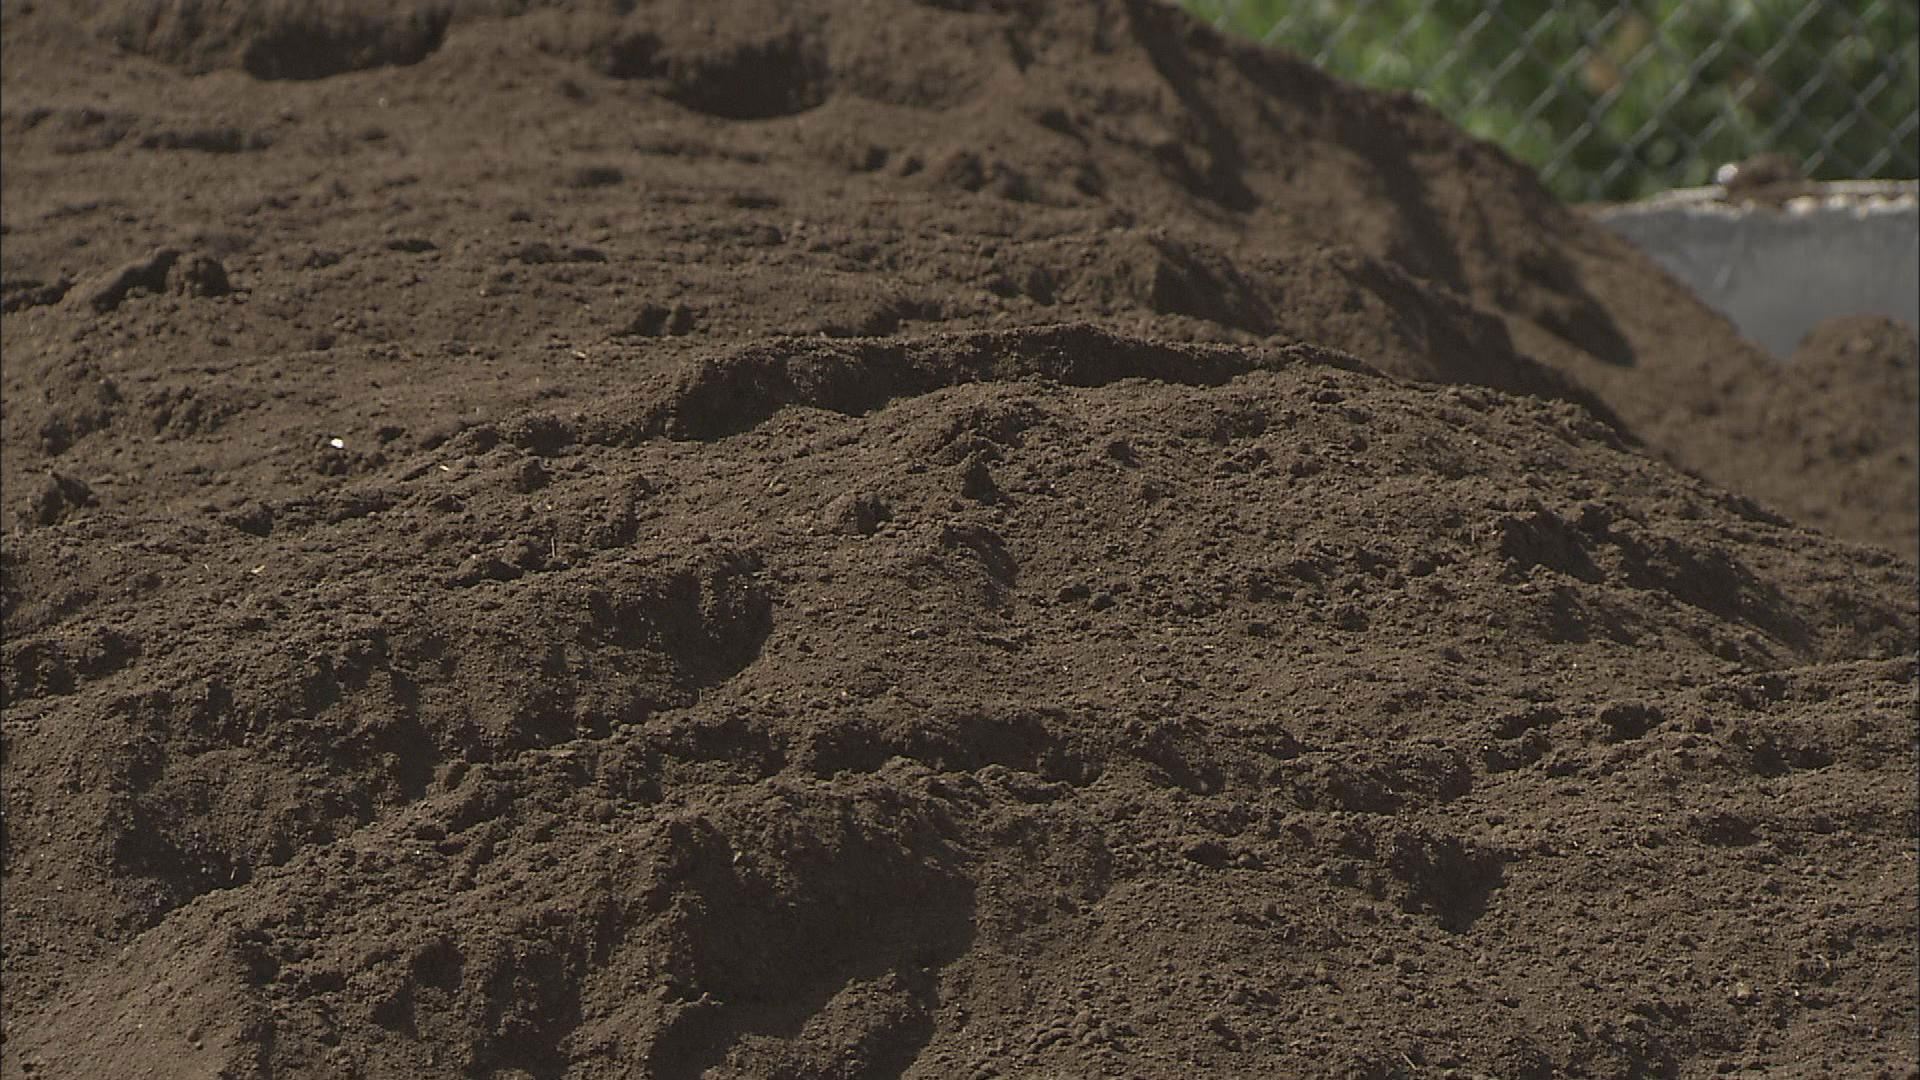 Video soil watch science trek online new hampshire for Science dirt